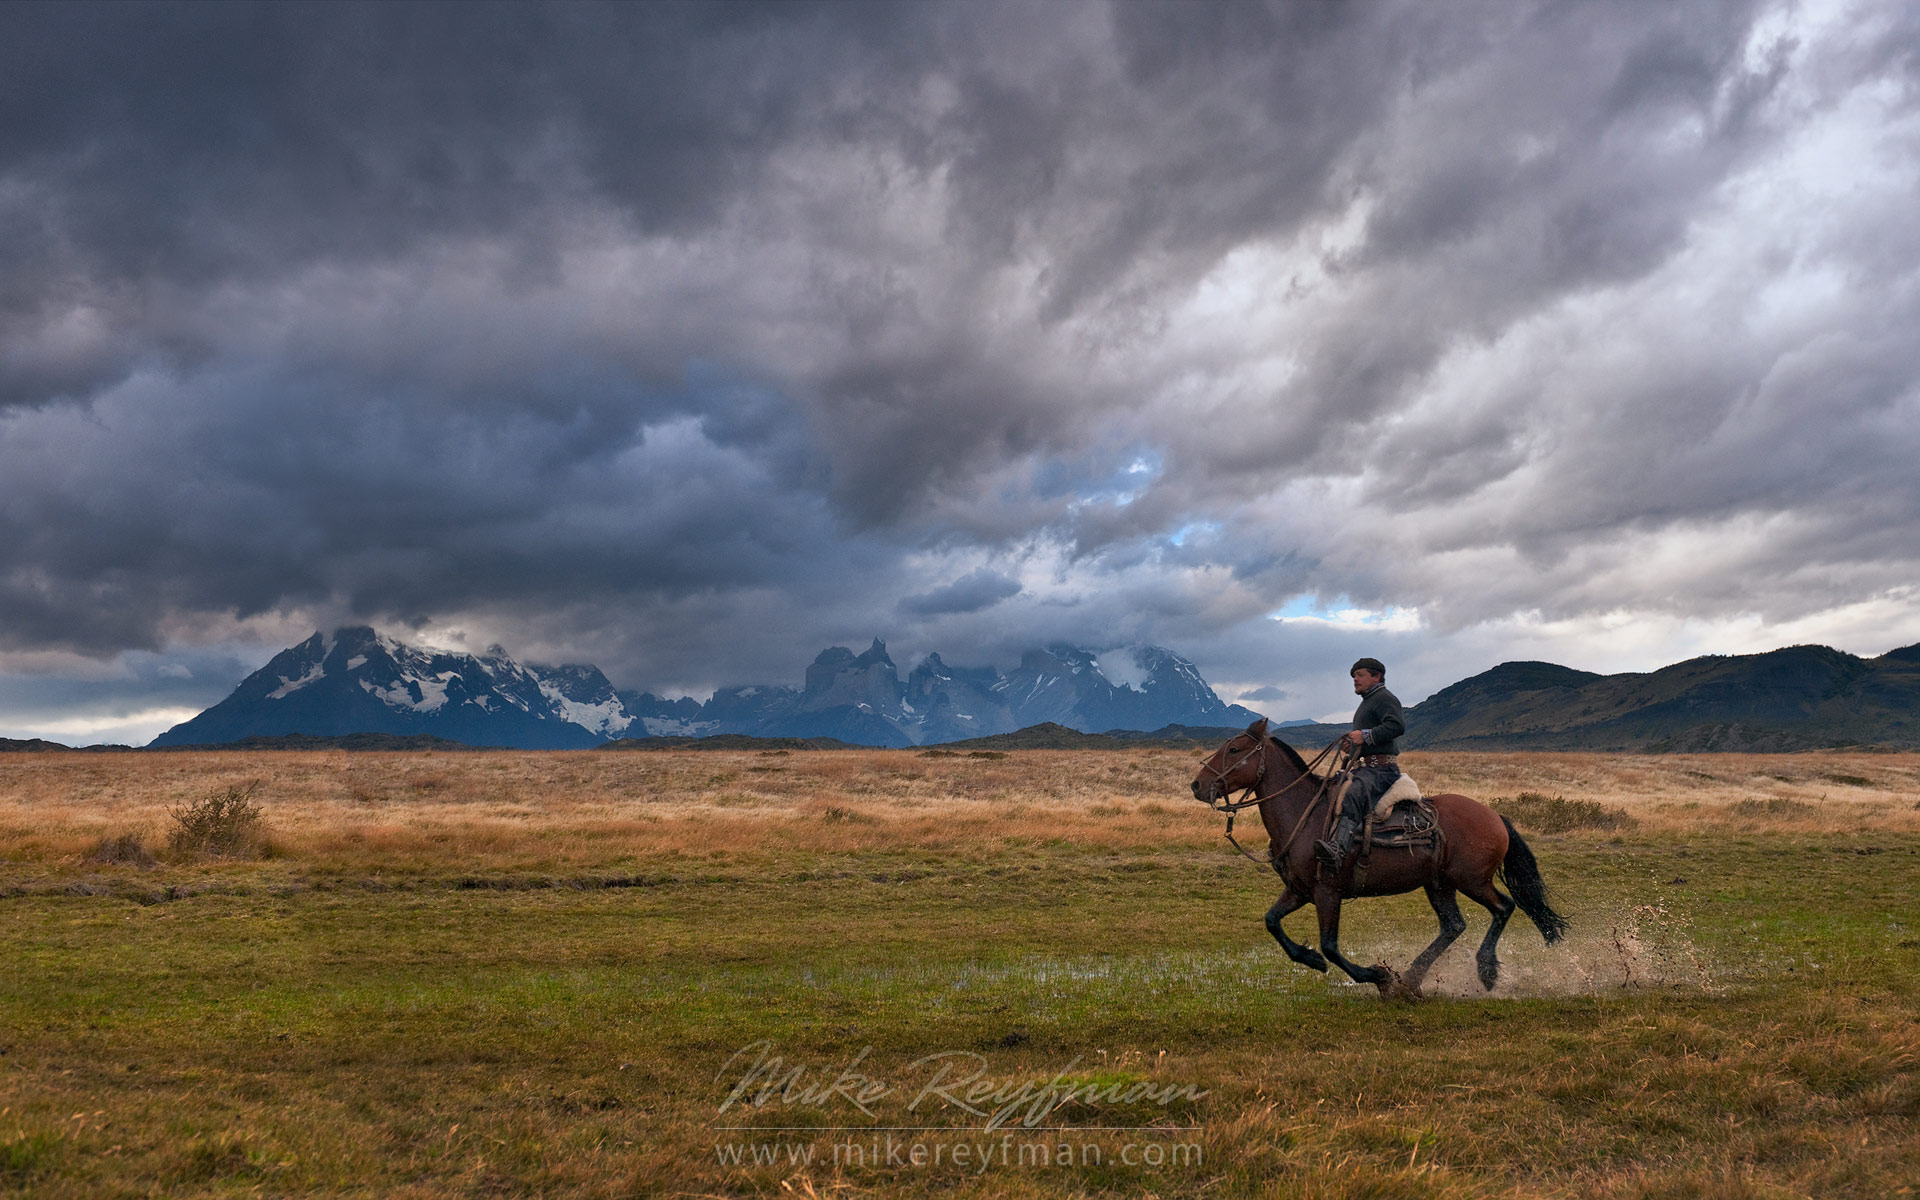 Gaucho galloping on a horse through Patagonian steppes after the rain. Mountains of Torres del Paine National Park are on the backdrop. Ultima Esperanza Province, Magallanes and Antartica Chilena Region XII, Patagonia, Chile. - Patagonia-Wildlife-and-Horses - Mike Reyfman Photography